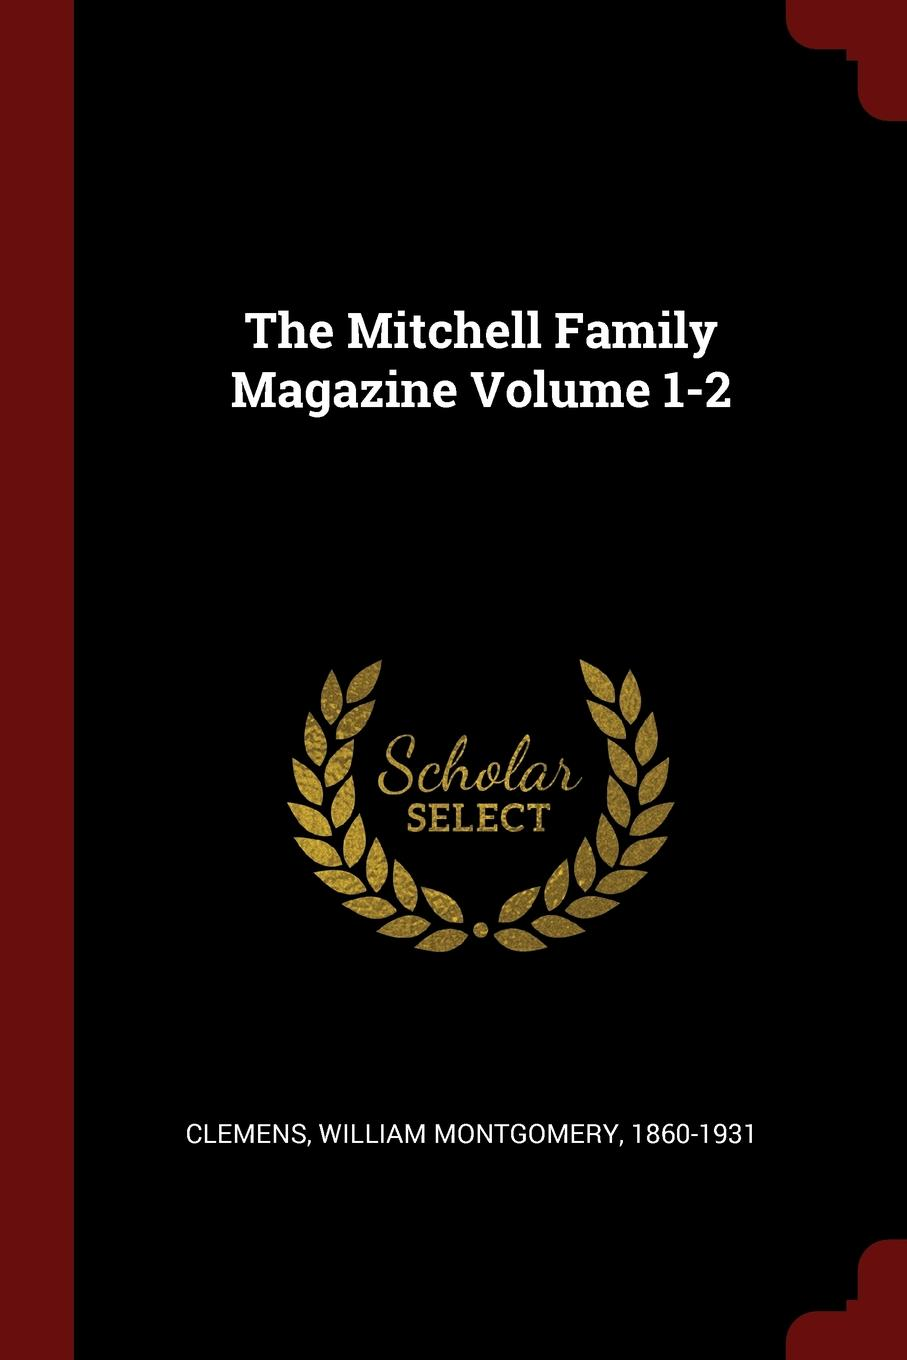 The Mitchell Family Magazine Volume 1-2